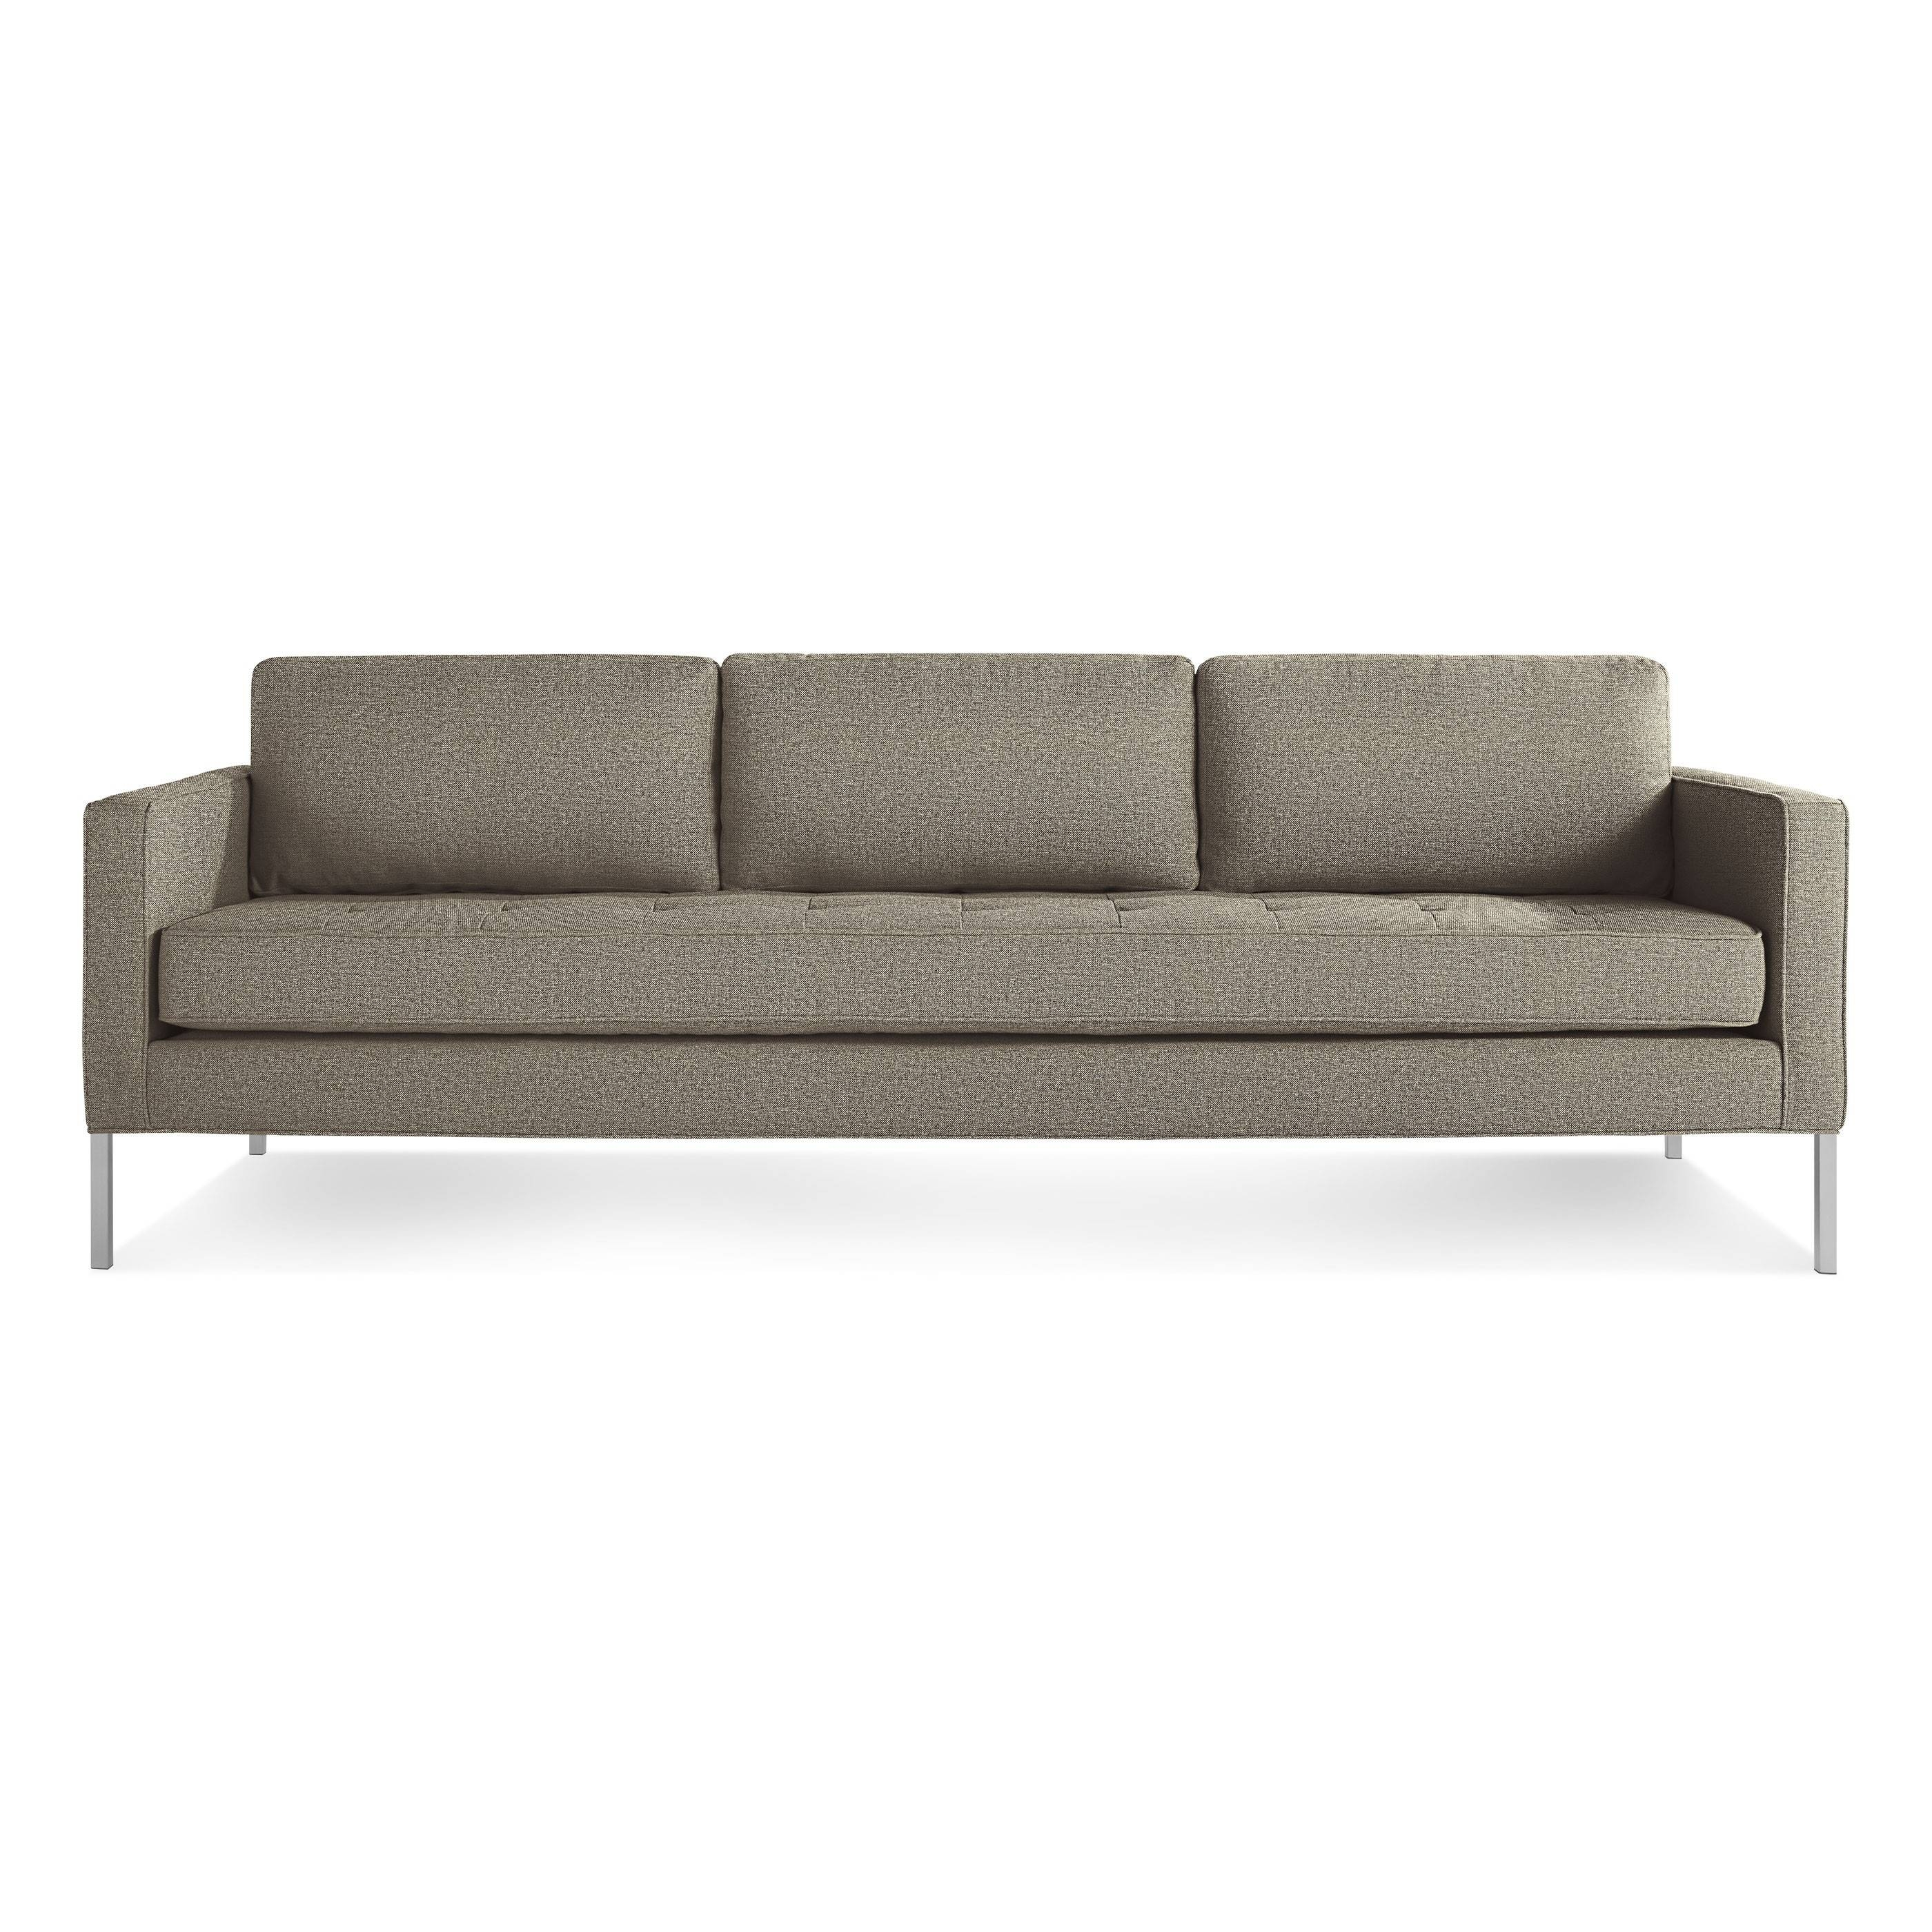 Mono Sofa - Single Cushion Sofa | Blu Dot throughout One Cushion Sofas (Image 13 of 30)